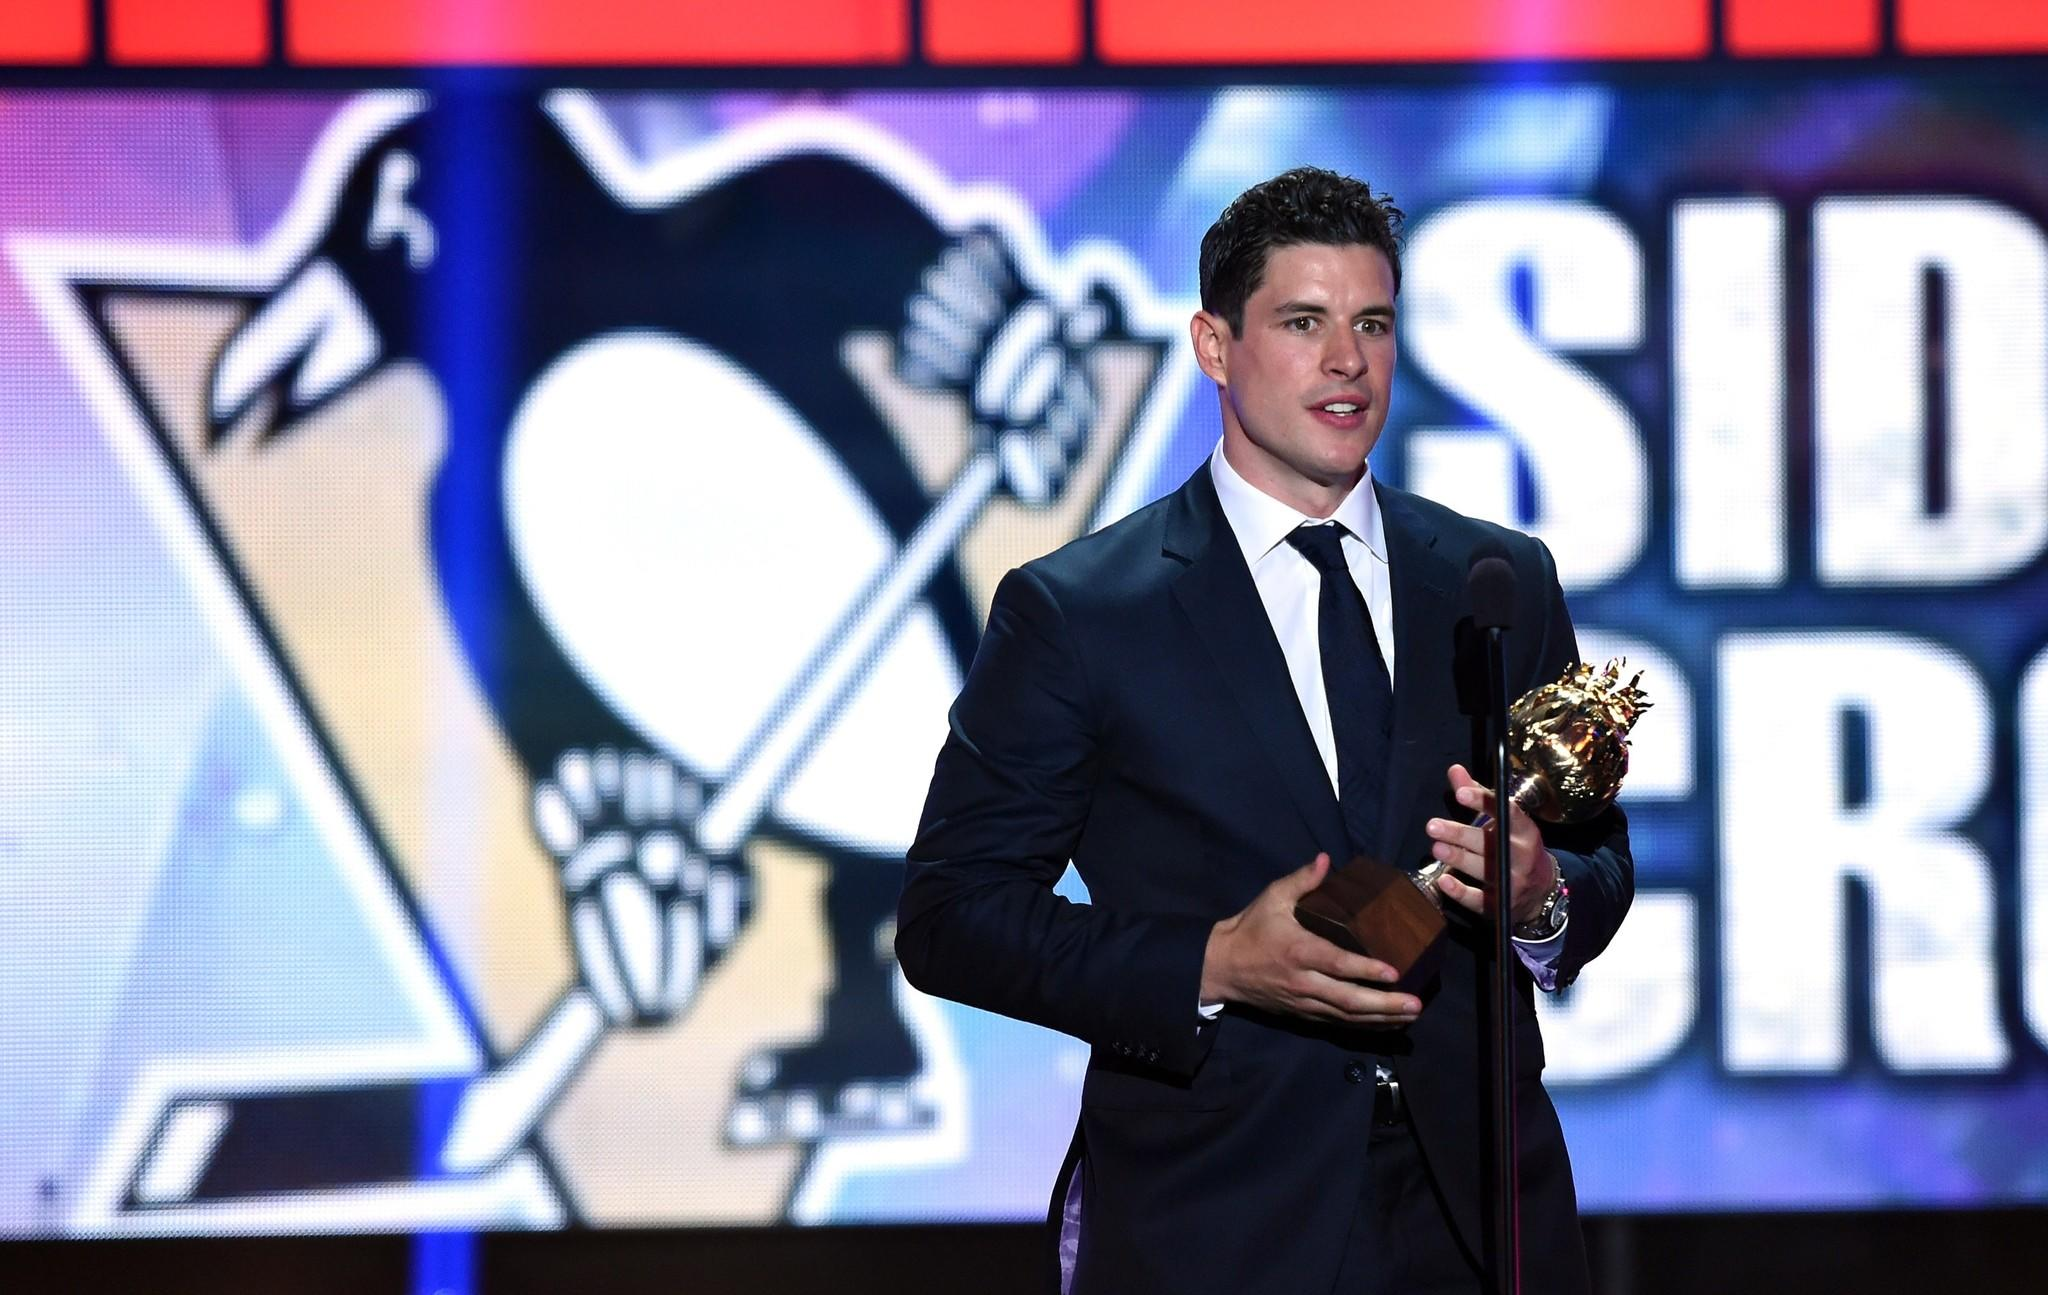 Sidney Crosby of the Penguins speaks after winning the Hart Memorial Trophy during the 2014 NHL Awards at the Encore Theater at Wynn Las Vegas.